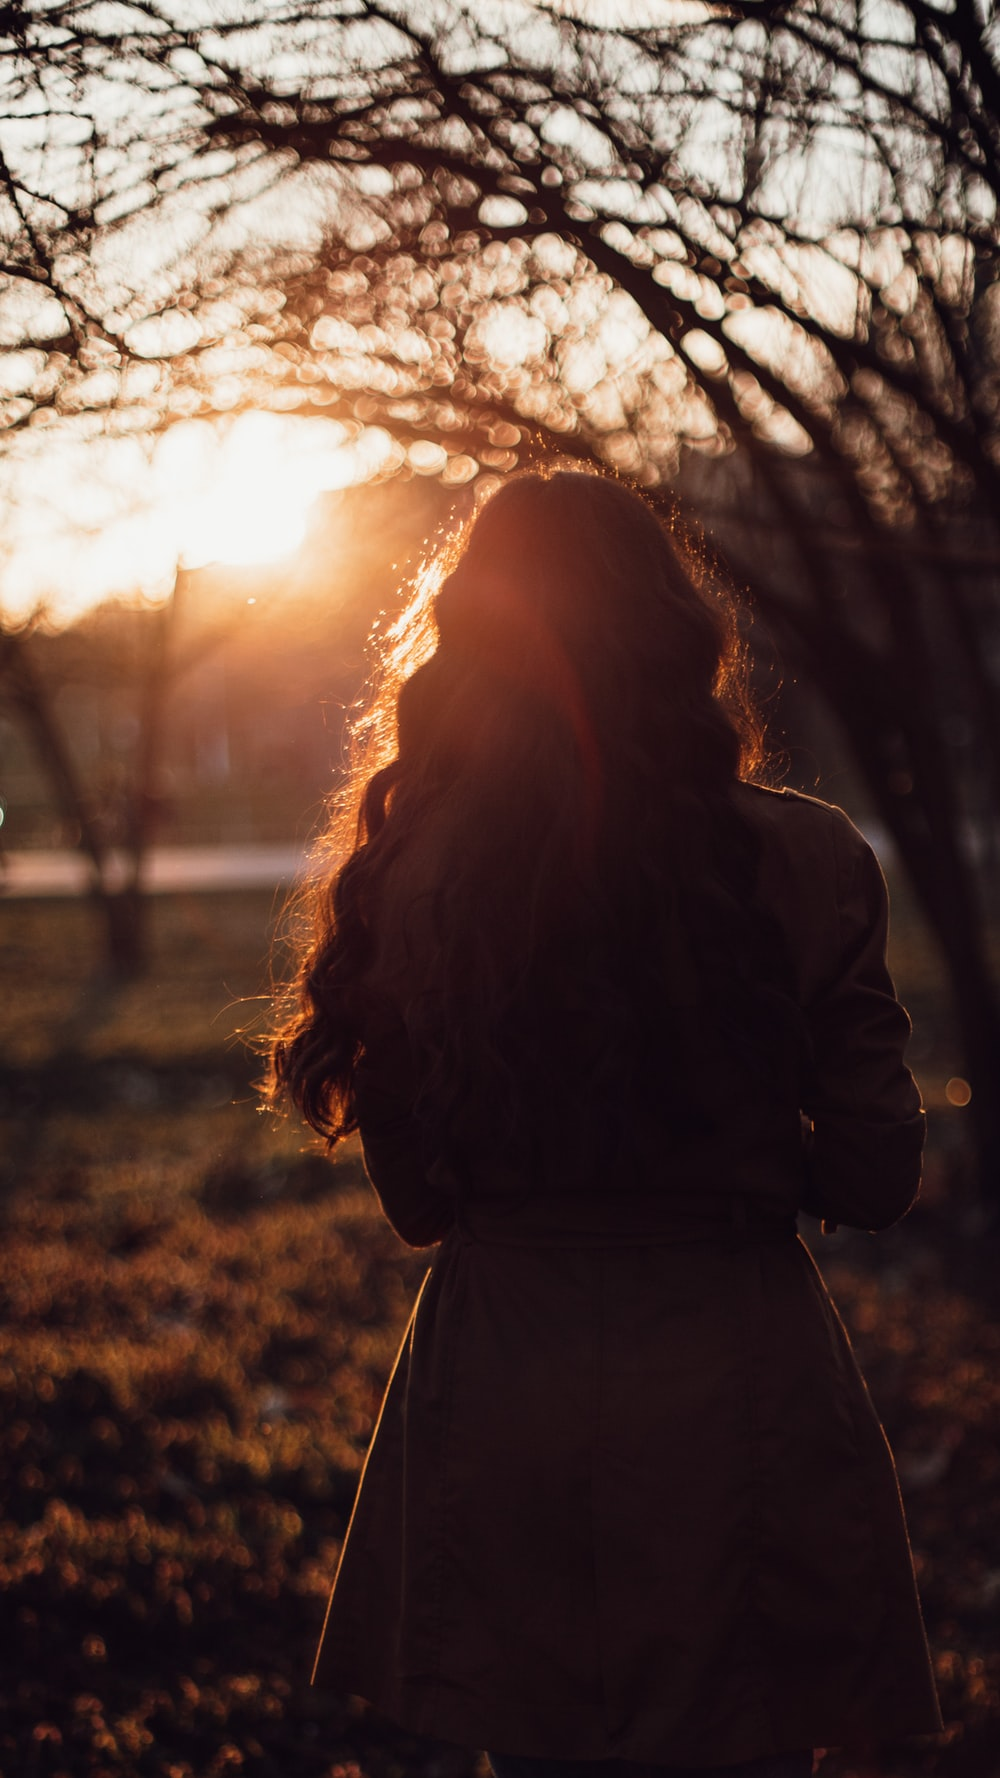 woman in black coat standing near trees during sunset